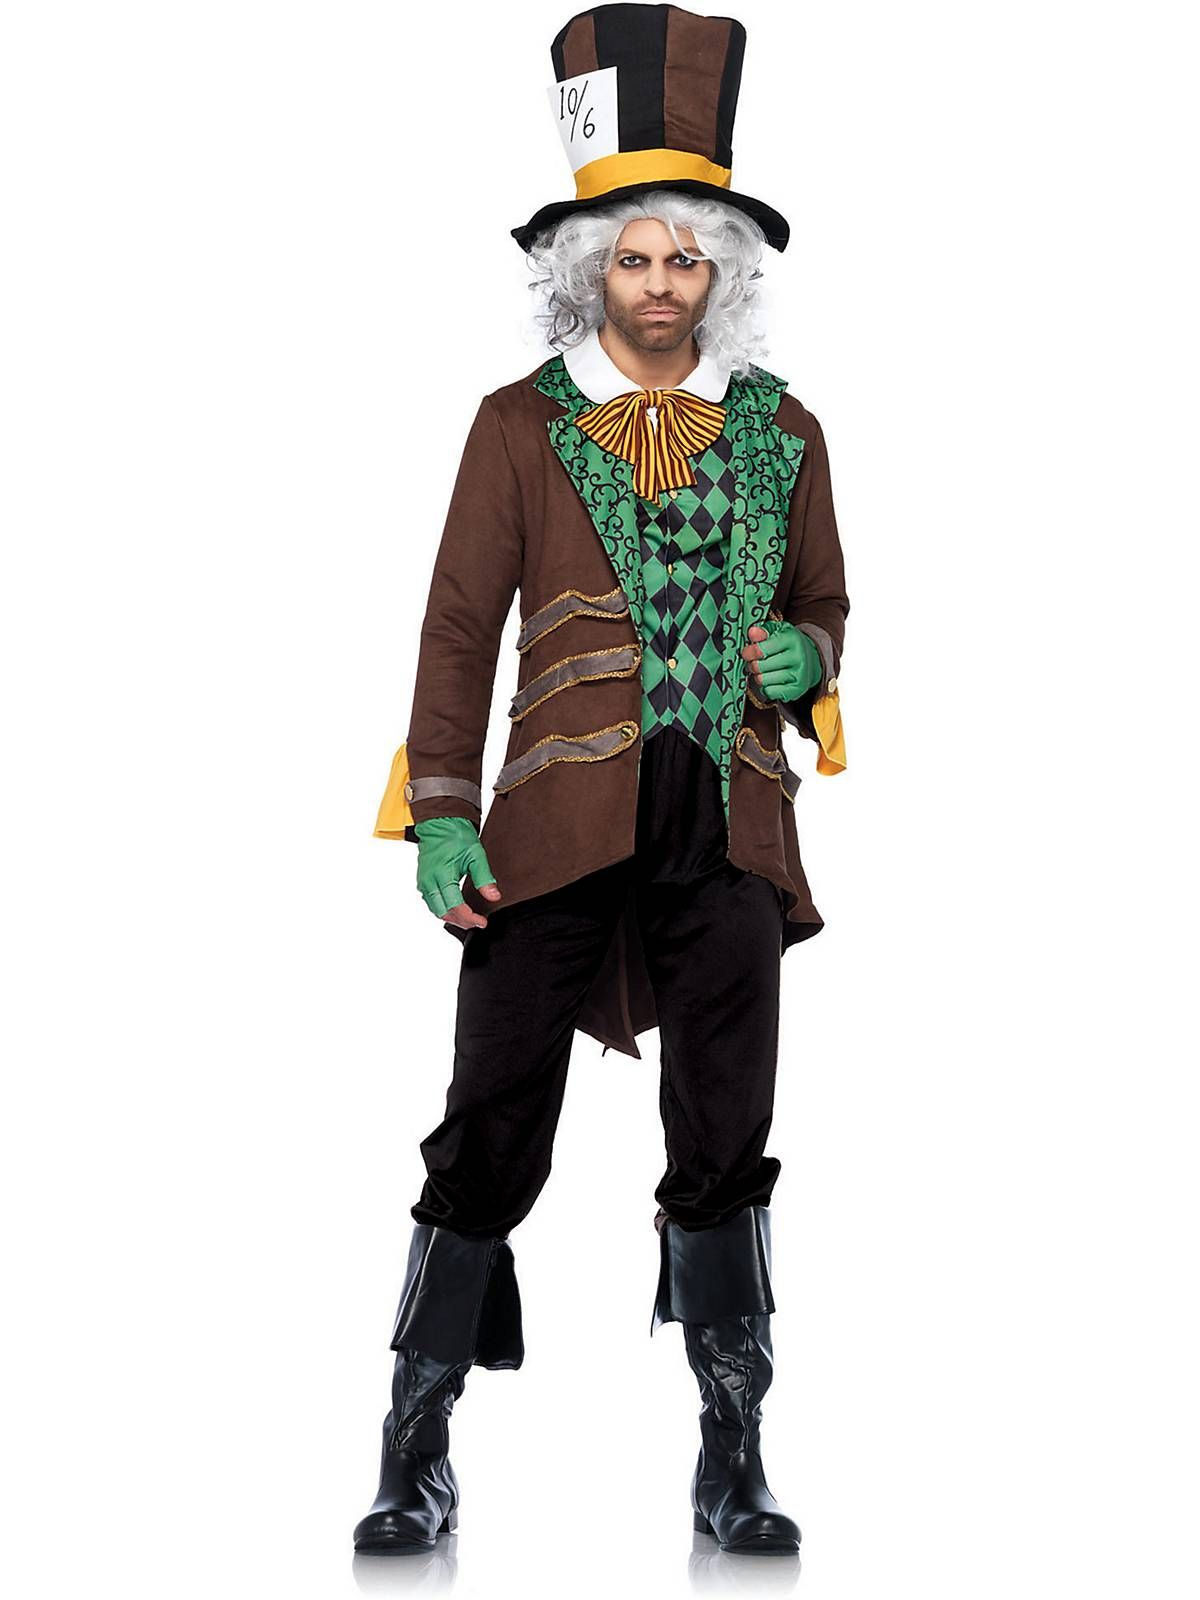 mens classic mad hatter costume wholesale fairytale costumes for kids and adults - Mad Hatter Halloween Costume For Kids